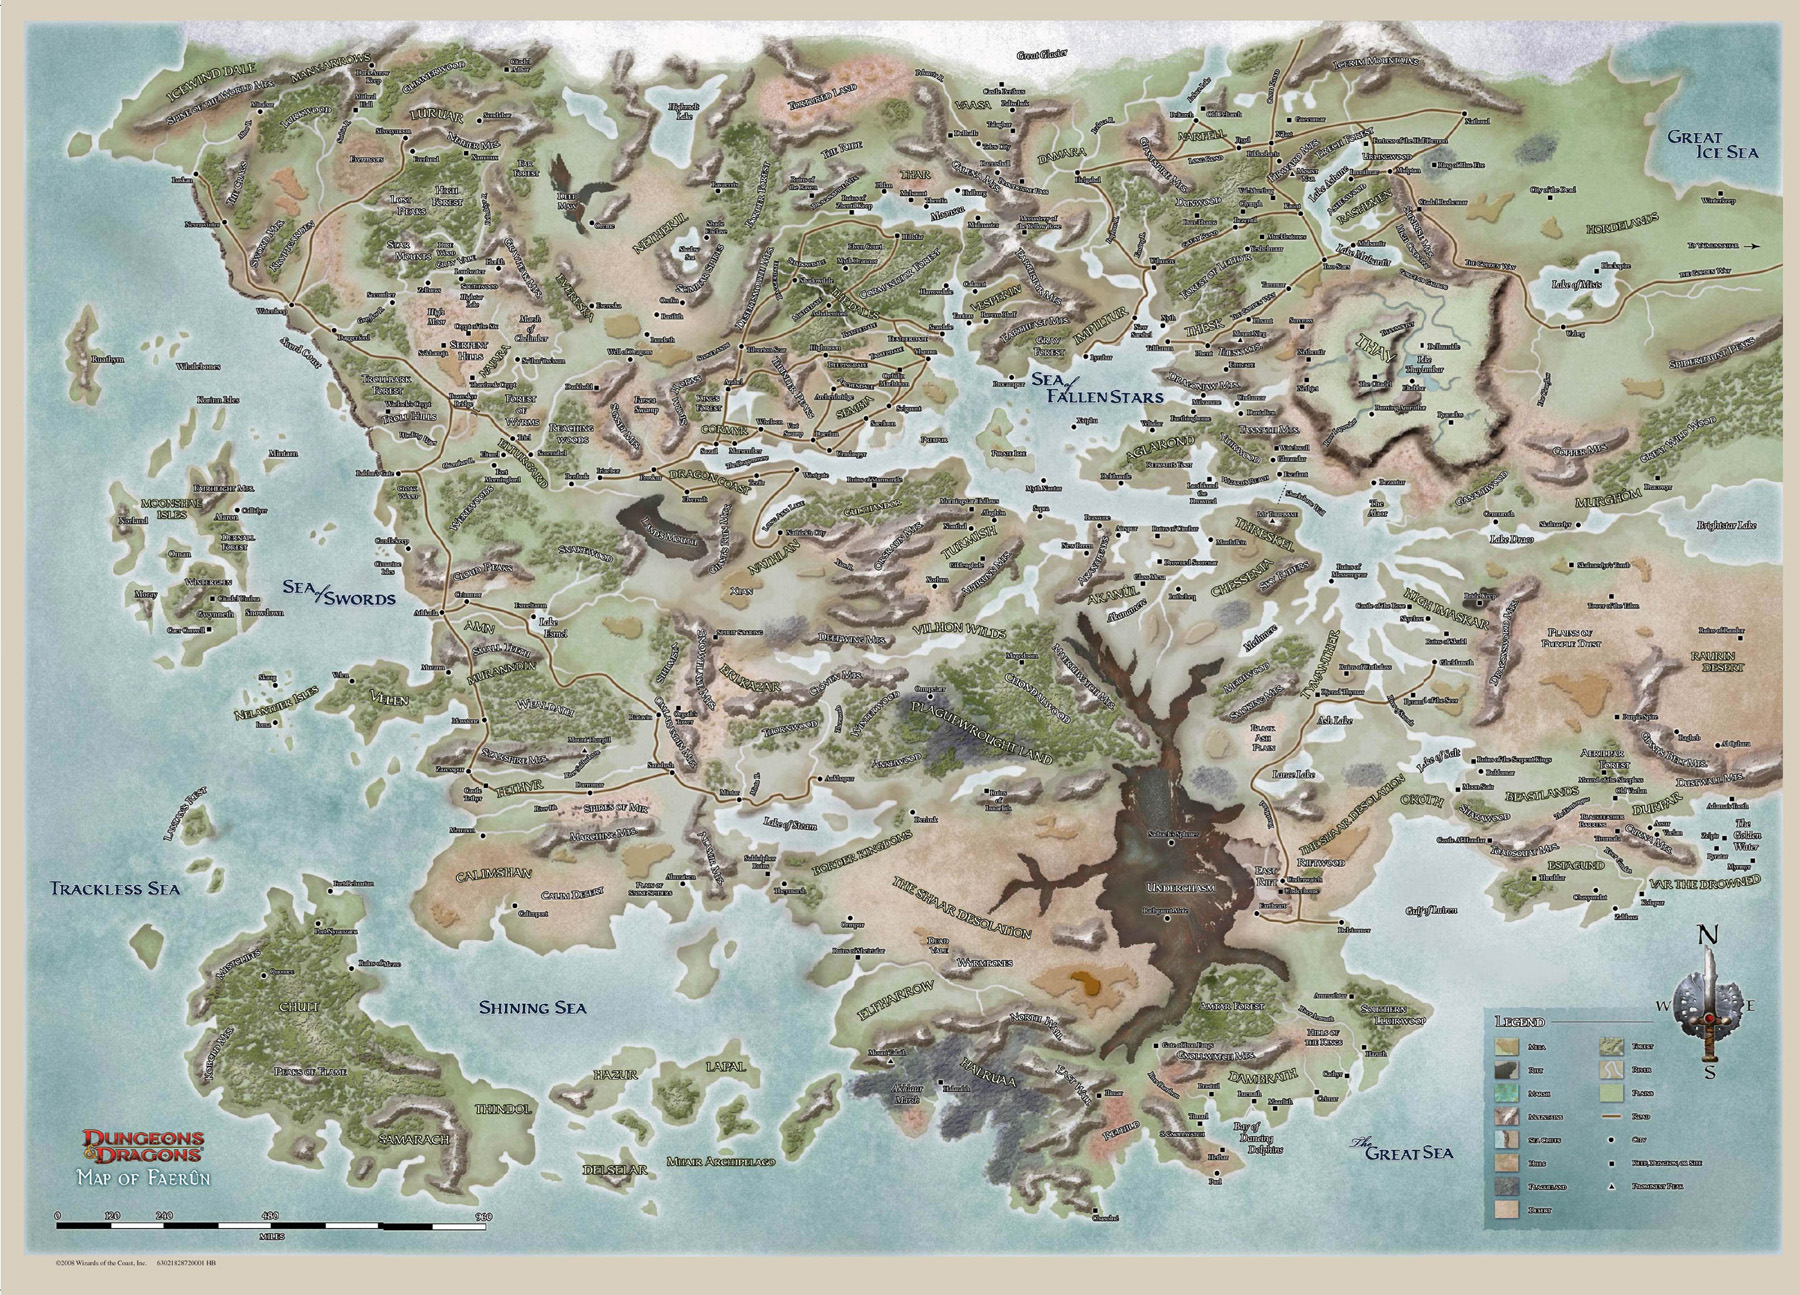 1479 faerun low res